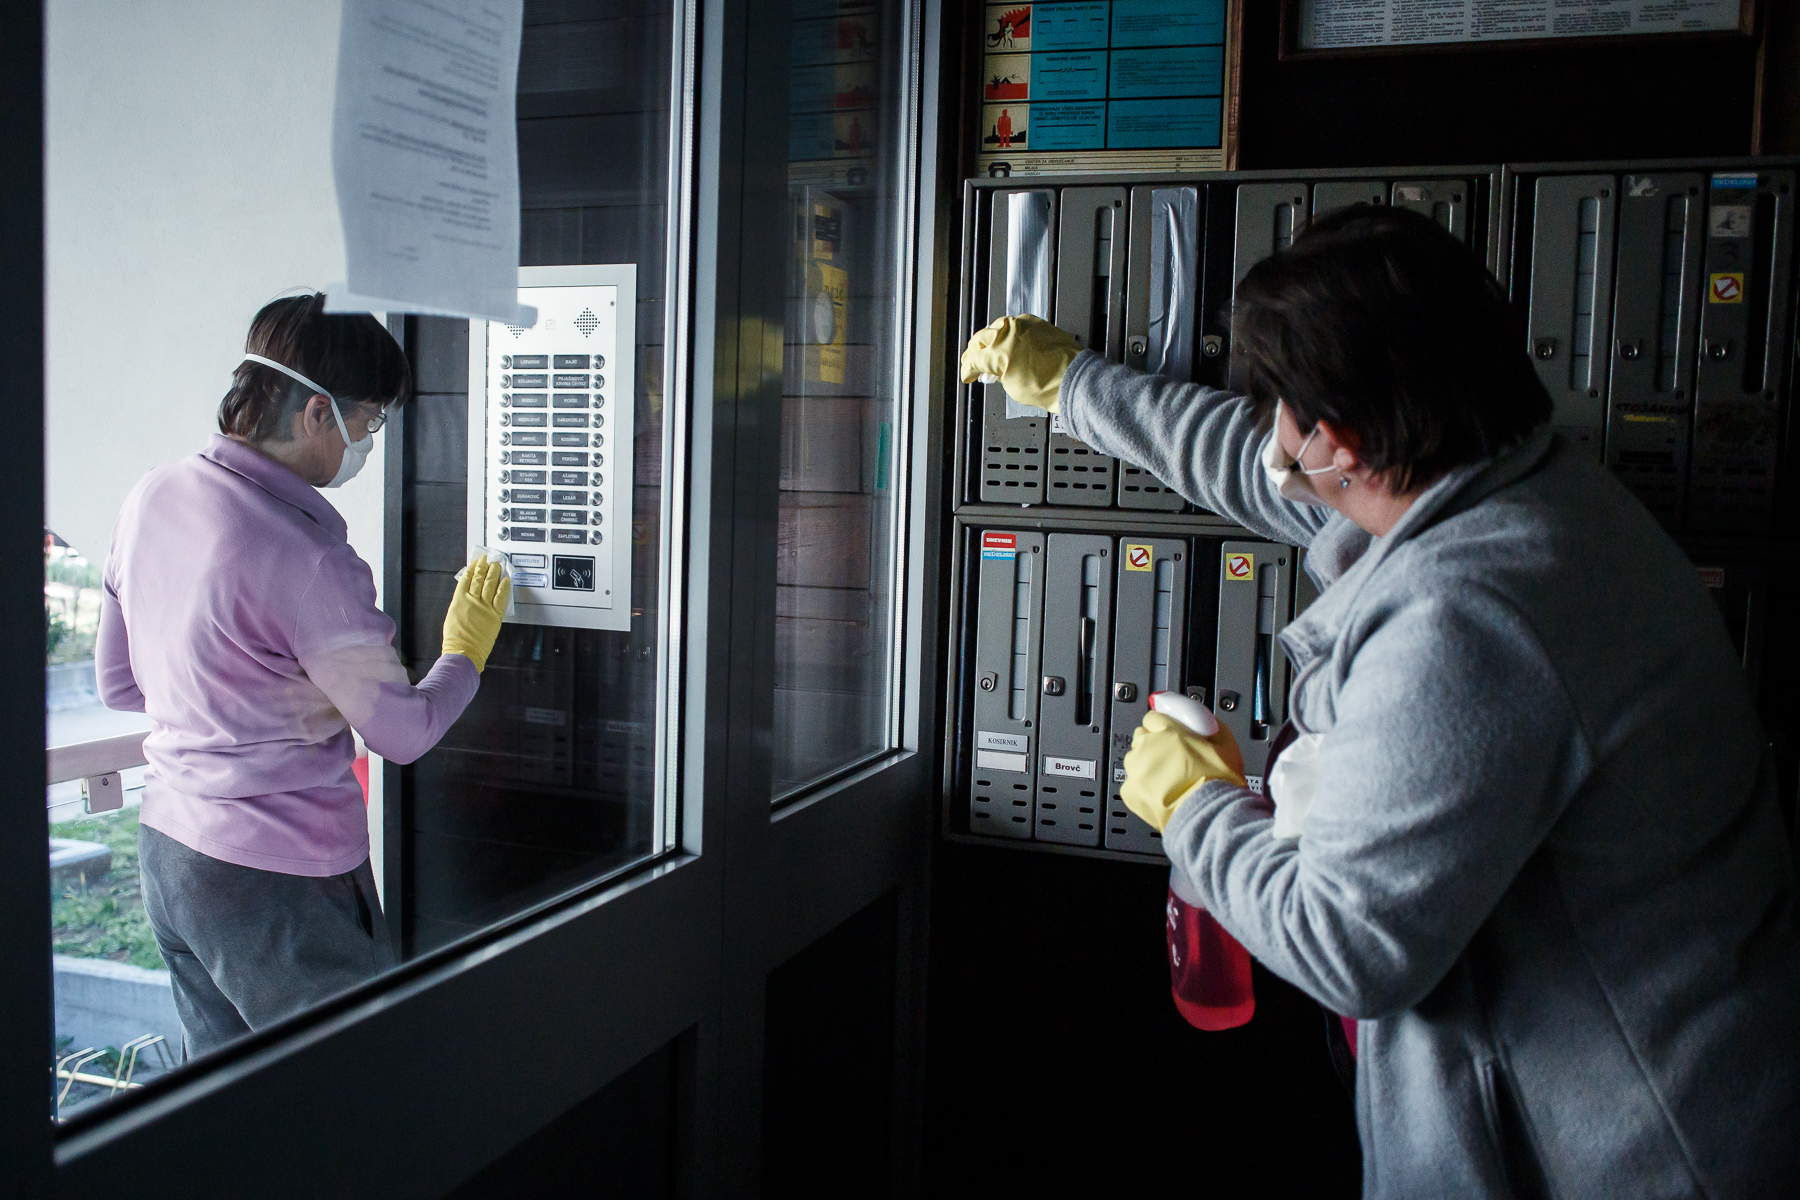 Residents of an apartment building in Kranj, Slovenia, disinfect the building during mandatory daily apartment building disinfection on April 3, 2020.